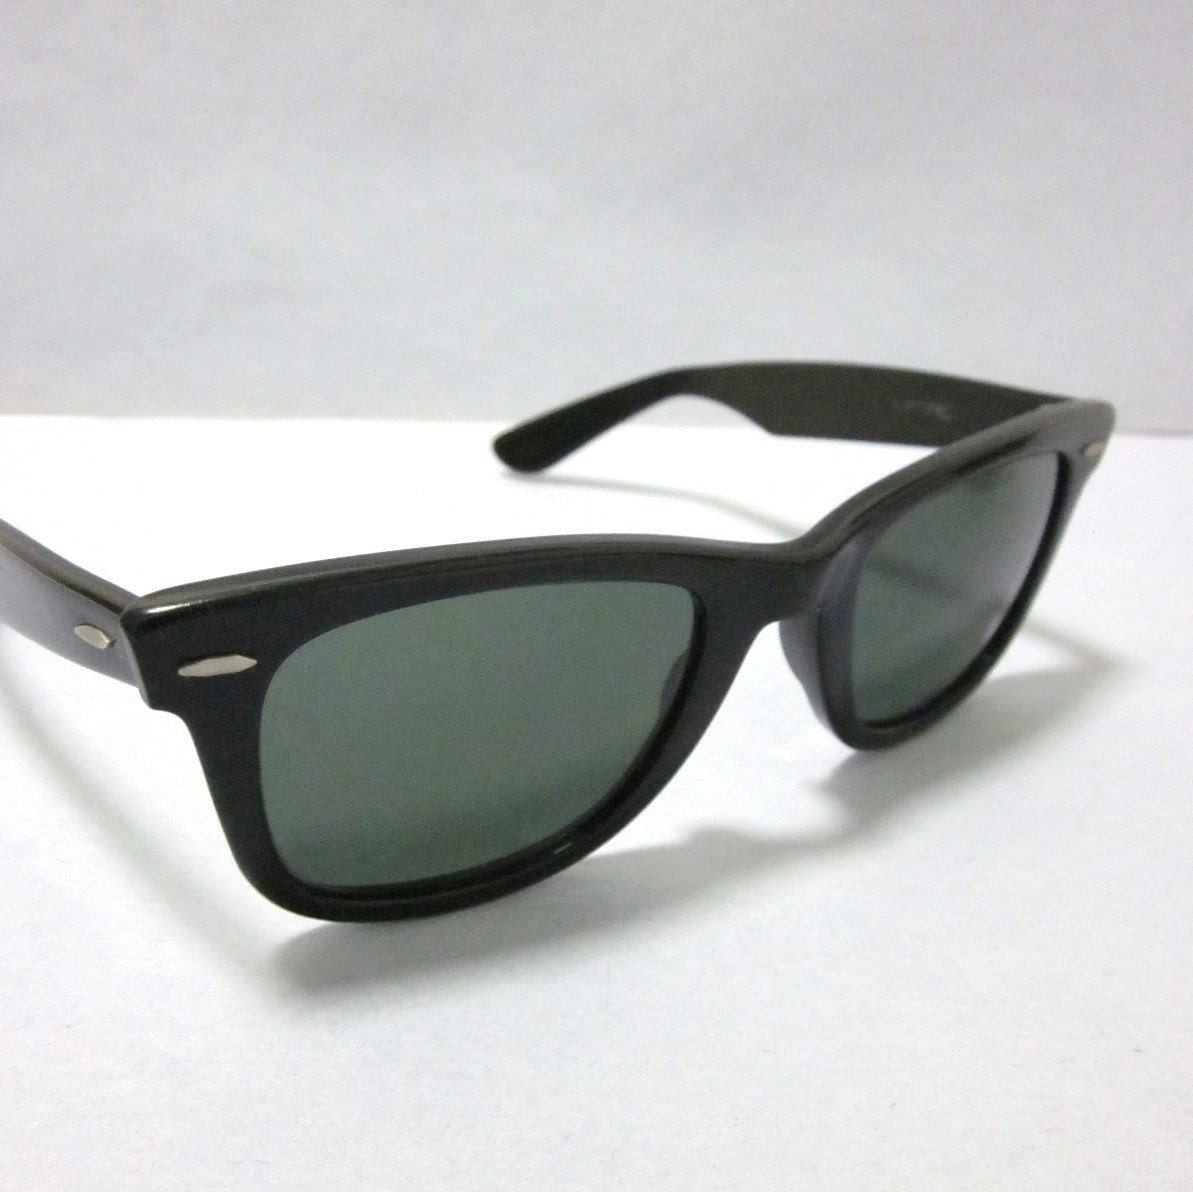 984444375c9 ... Collections Frame Types Best Sellers Lens Types New Arrivals Shop By  Model. b y l ray ban